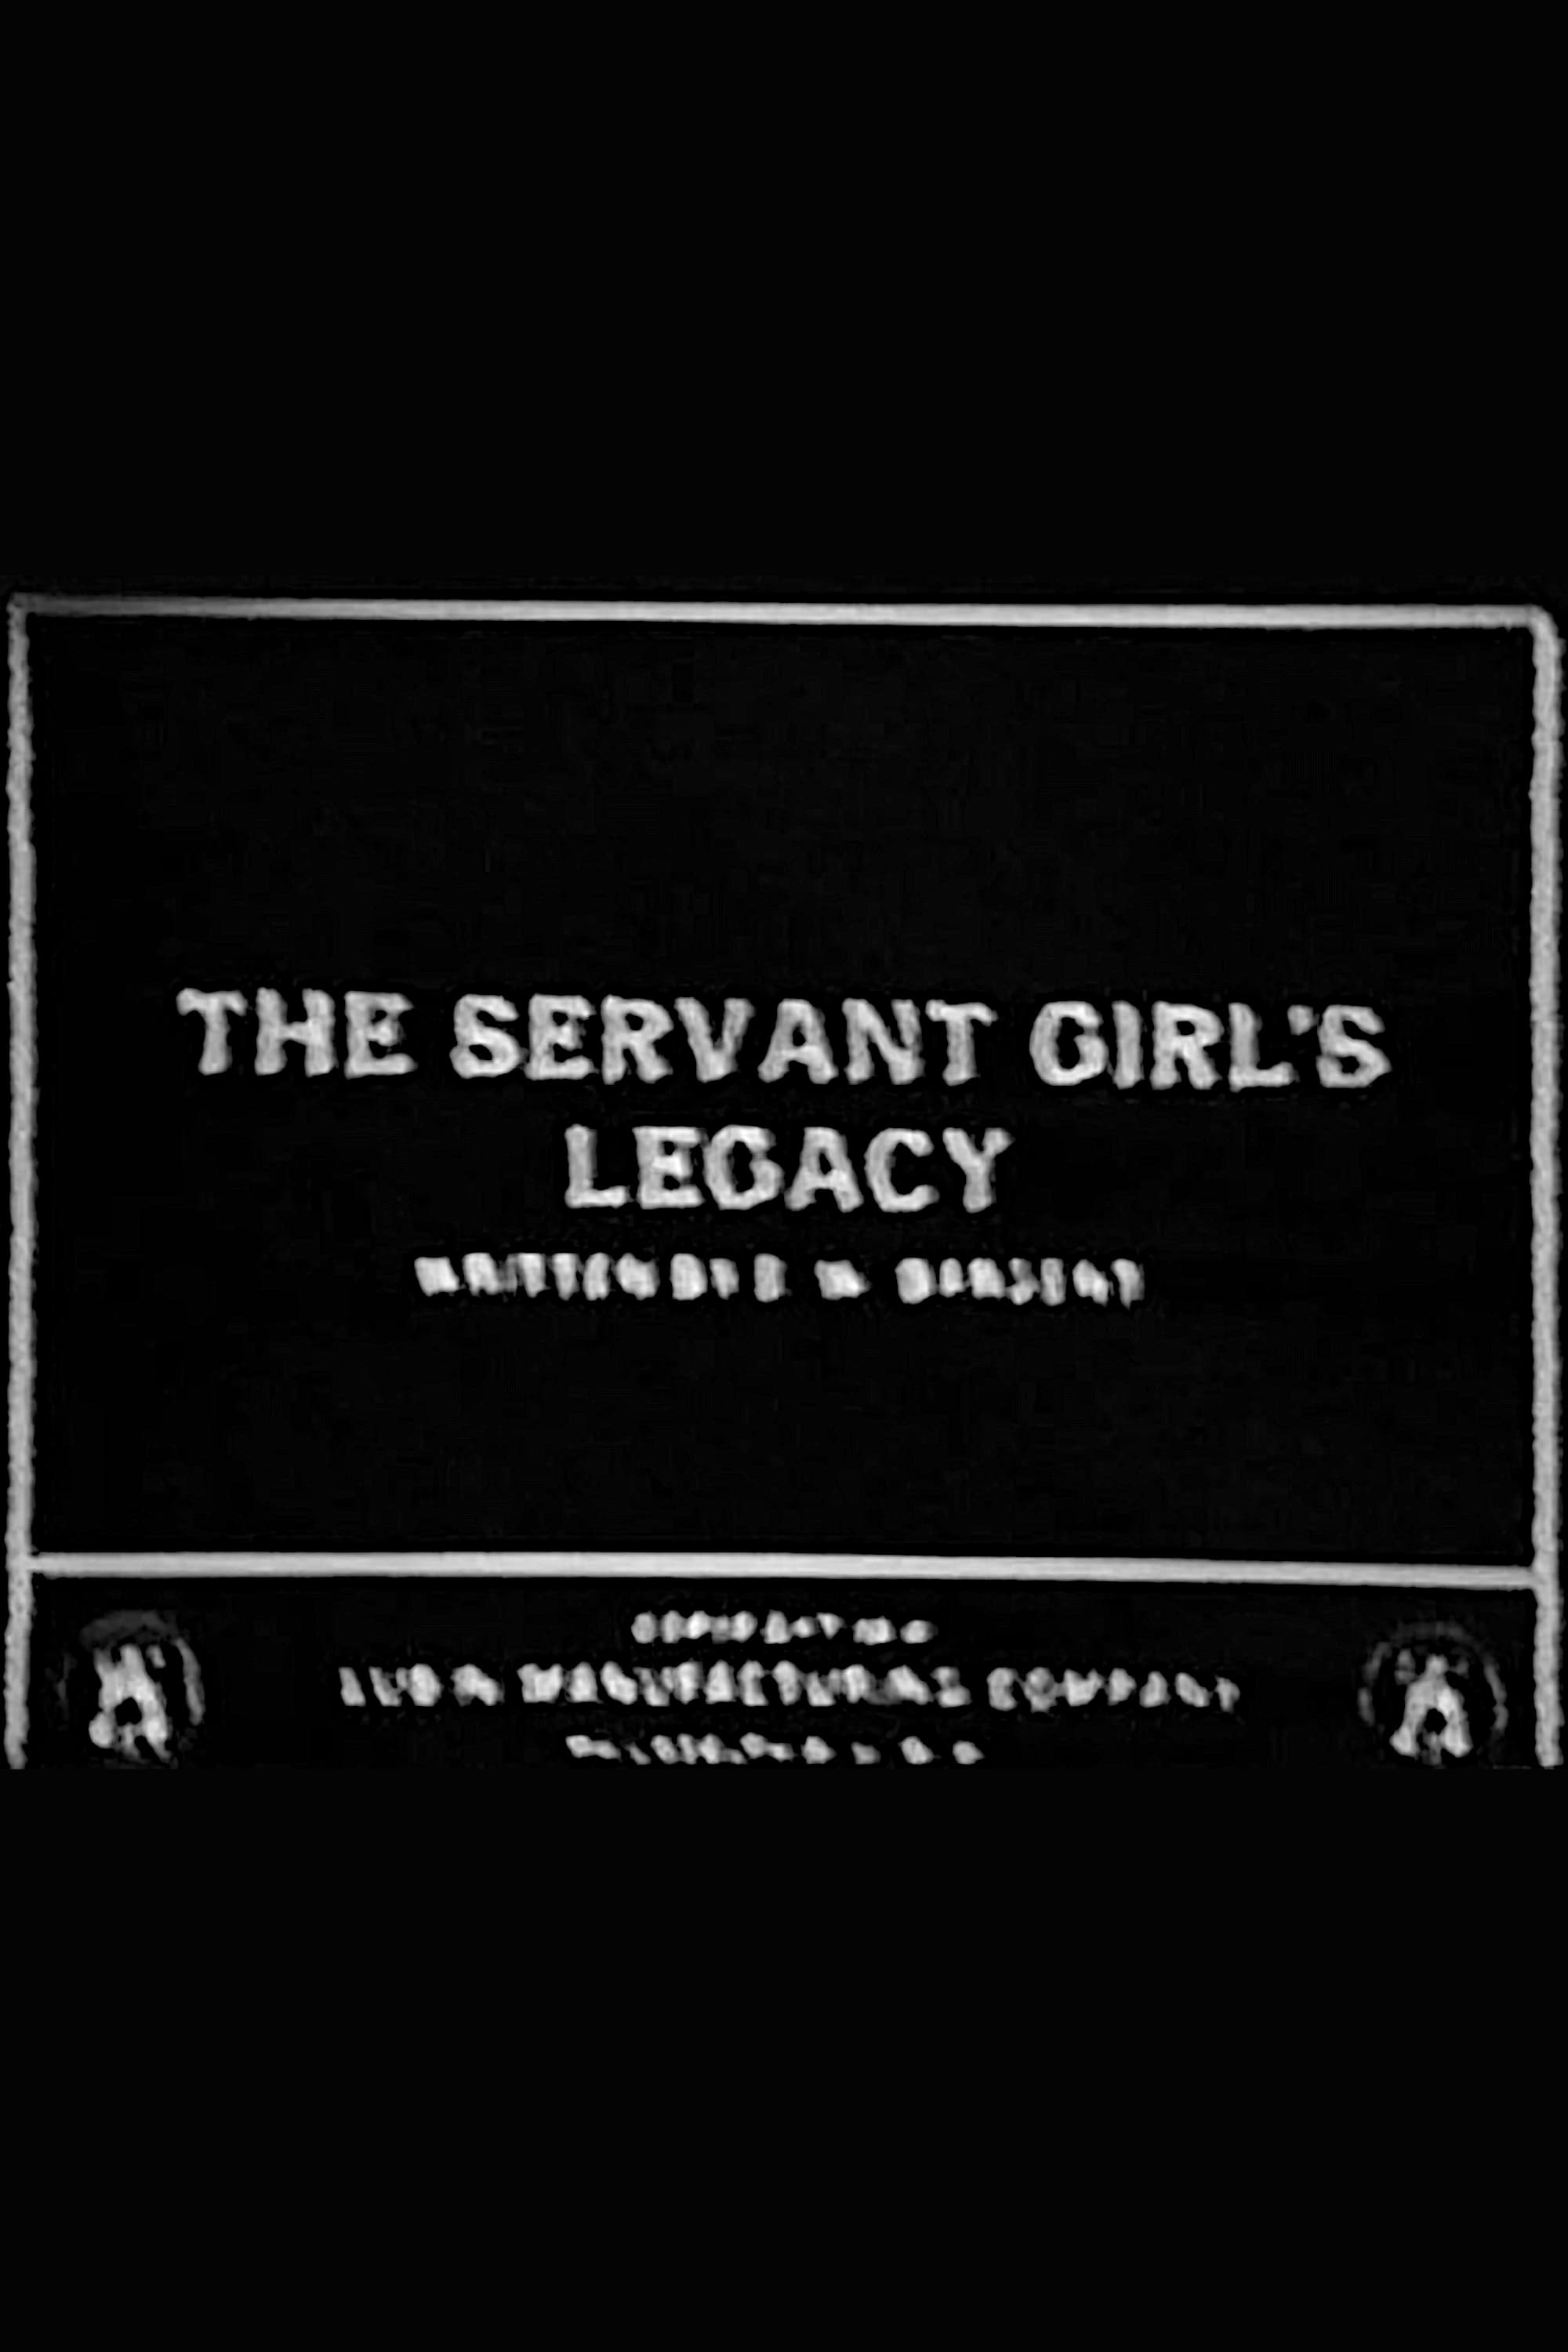 The Servant Girl's Legacy (1914)